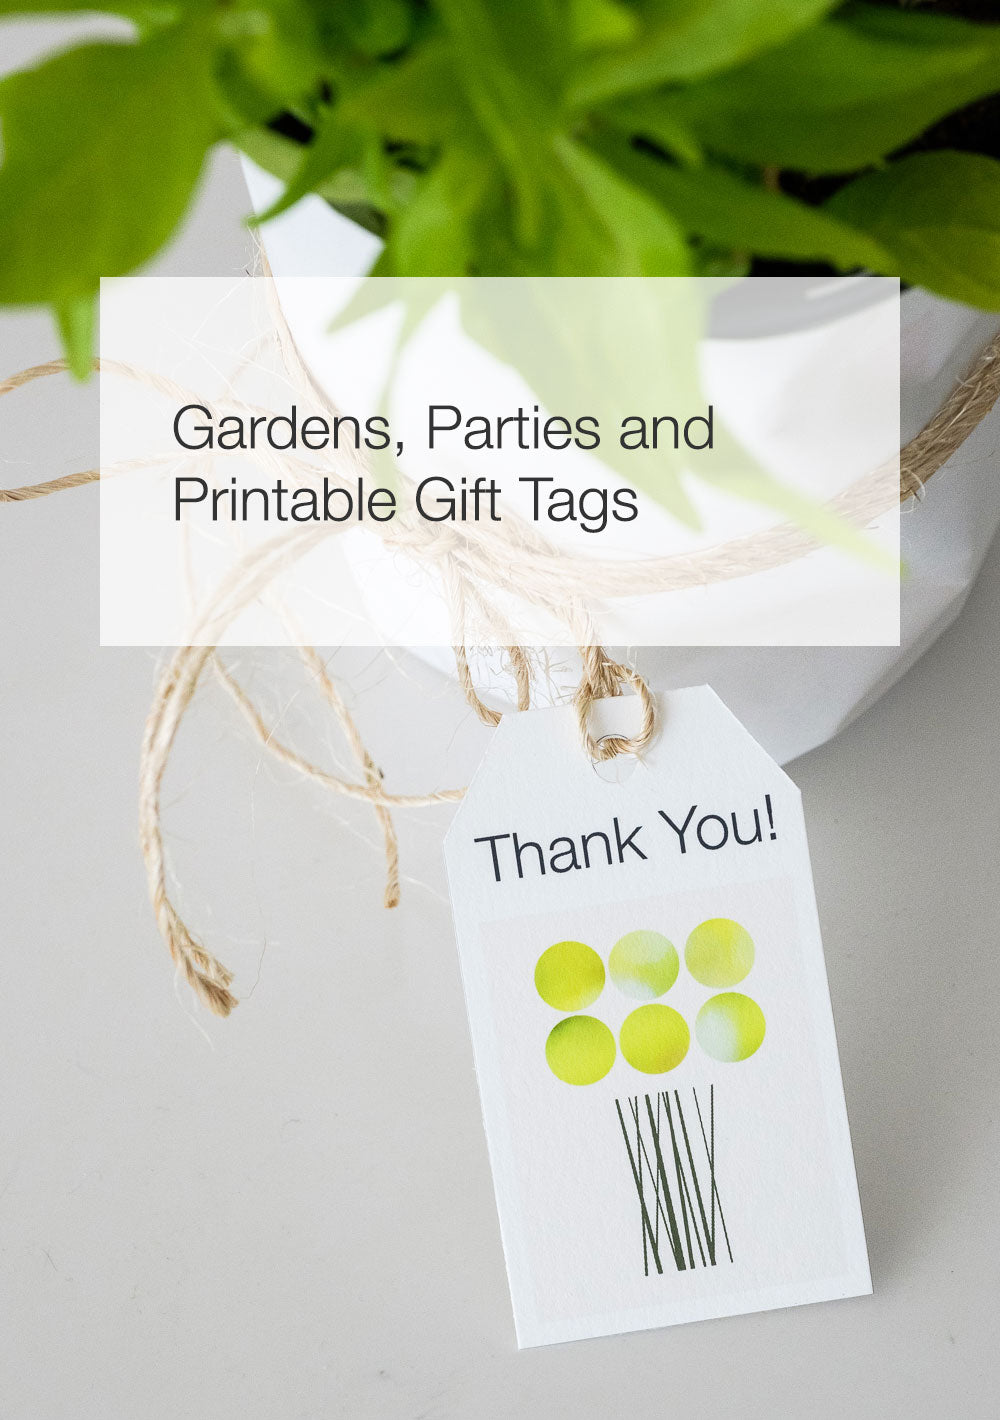 Gardens, Parties, and Printable Gift Tags